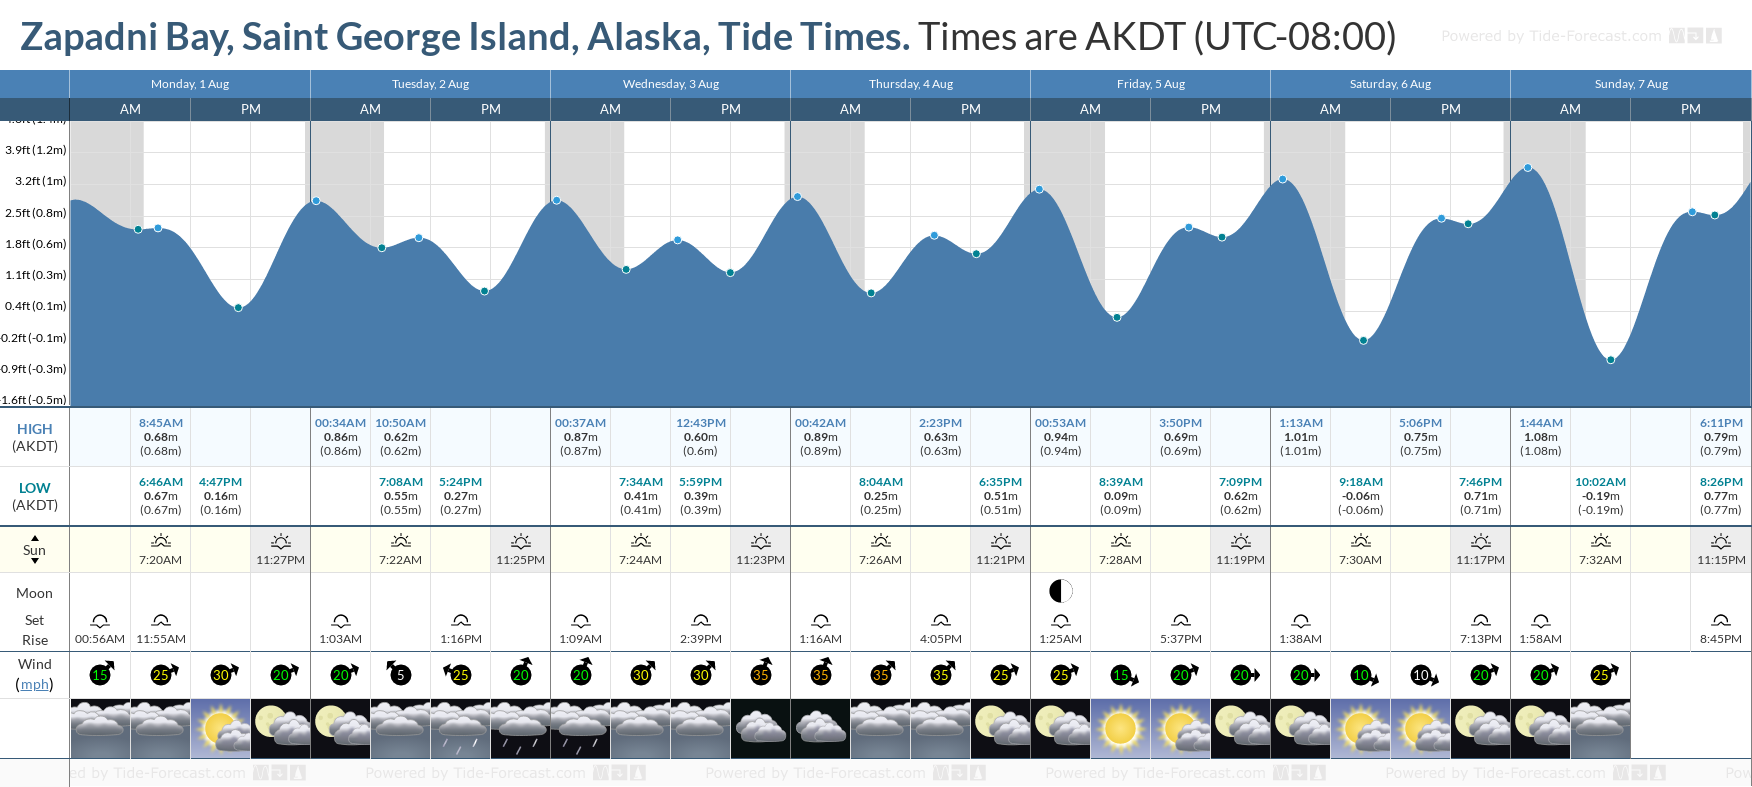 Zapadni Bay, Saint George Island, Alaska Tide Chart including high and low tide tide times for the next 7 days